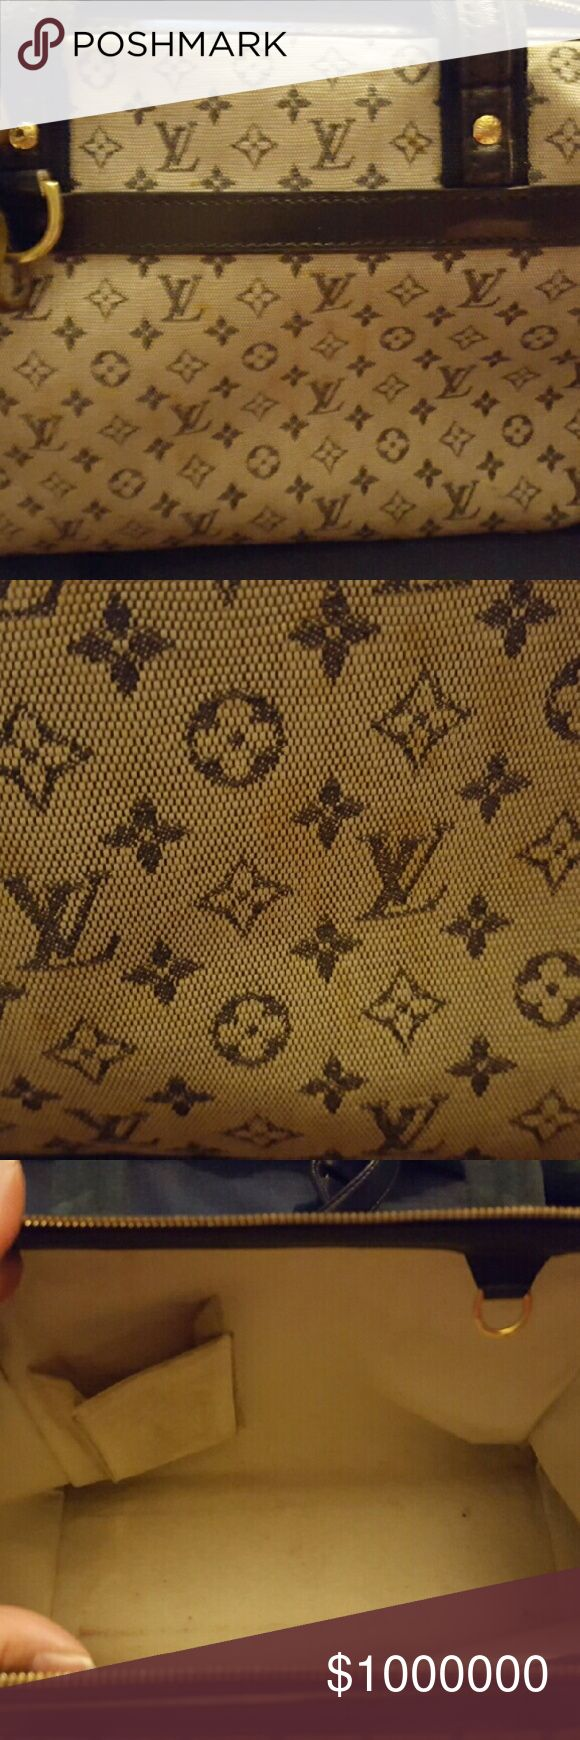 LOUIS VUITTON EXTRA PICTURES DON'T BUY EXTRA PICTURES FOR MINI LIN JOSEPHINE Bags Crossbody Bags